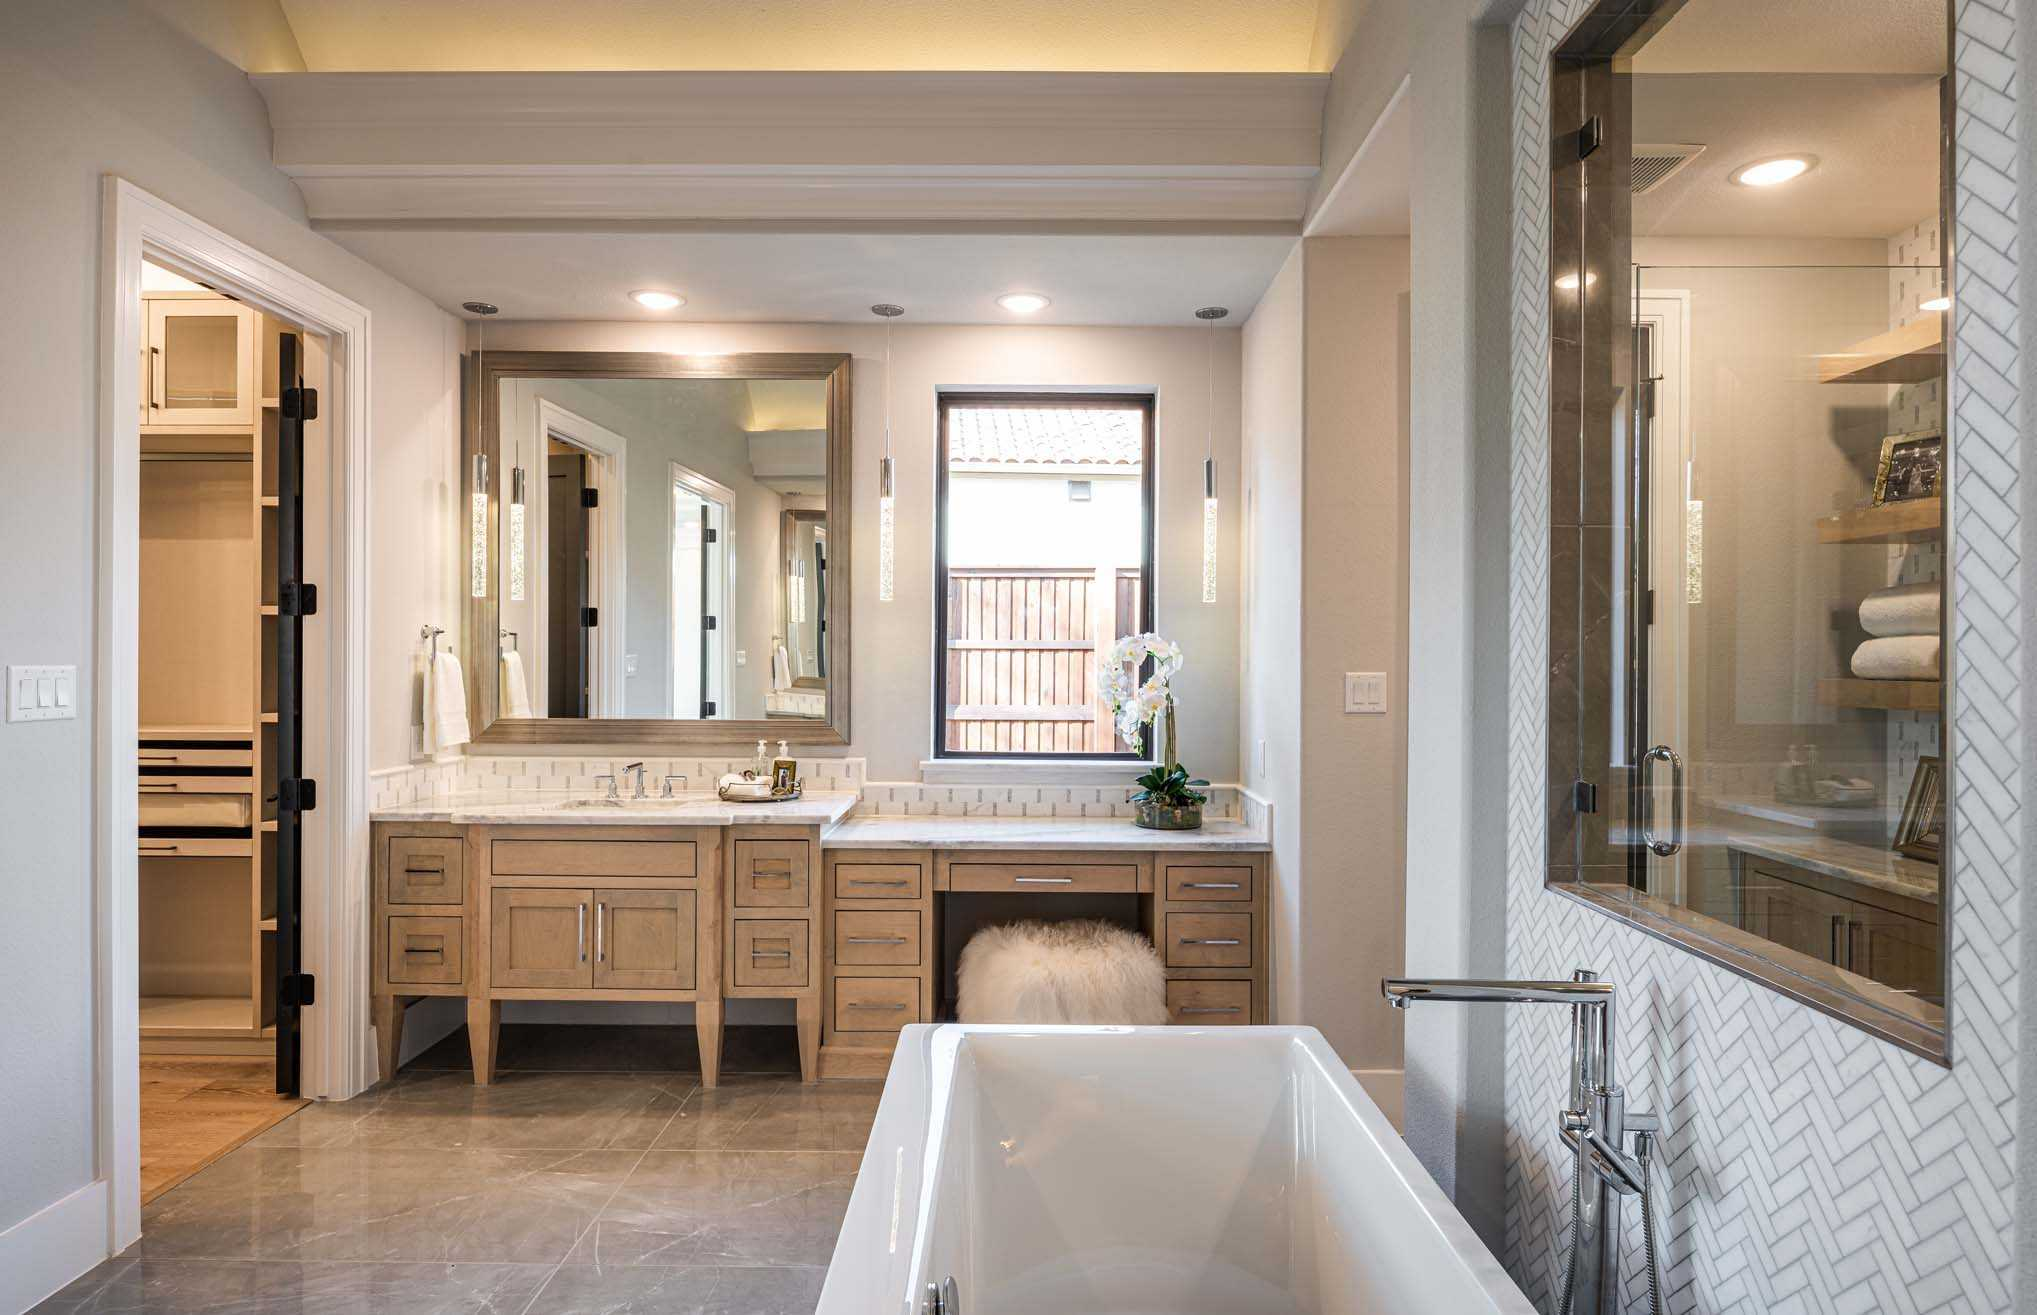 Bathroom featured in the Plan 5200 CUSTOM PLAN By Huntington Homes in Dallas, TX